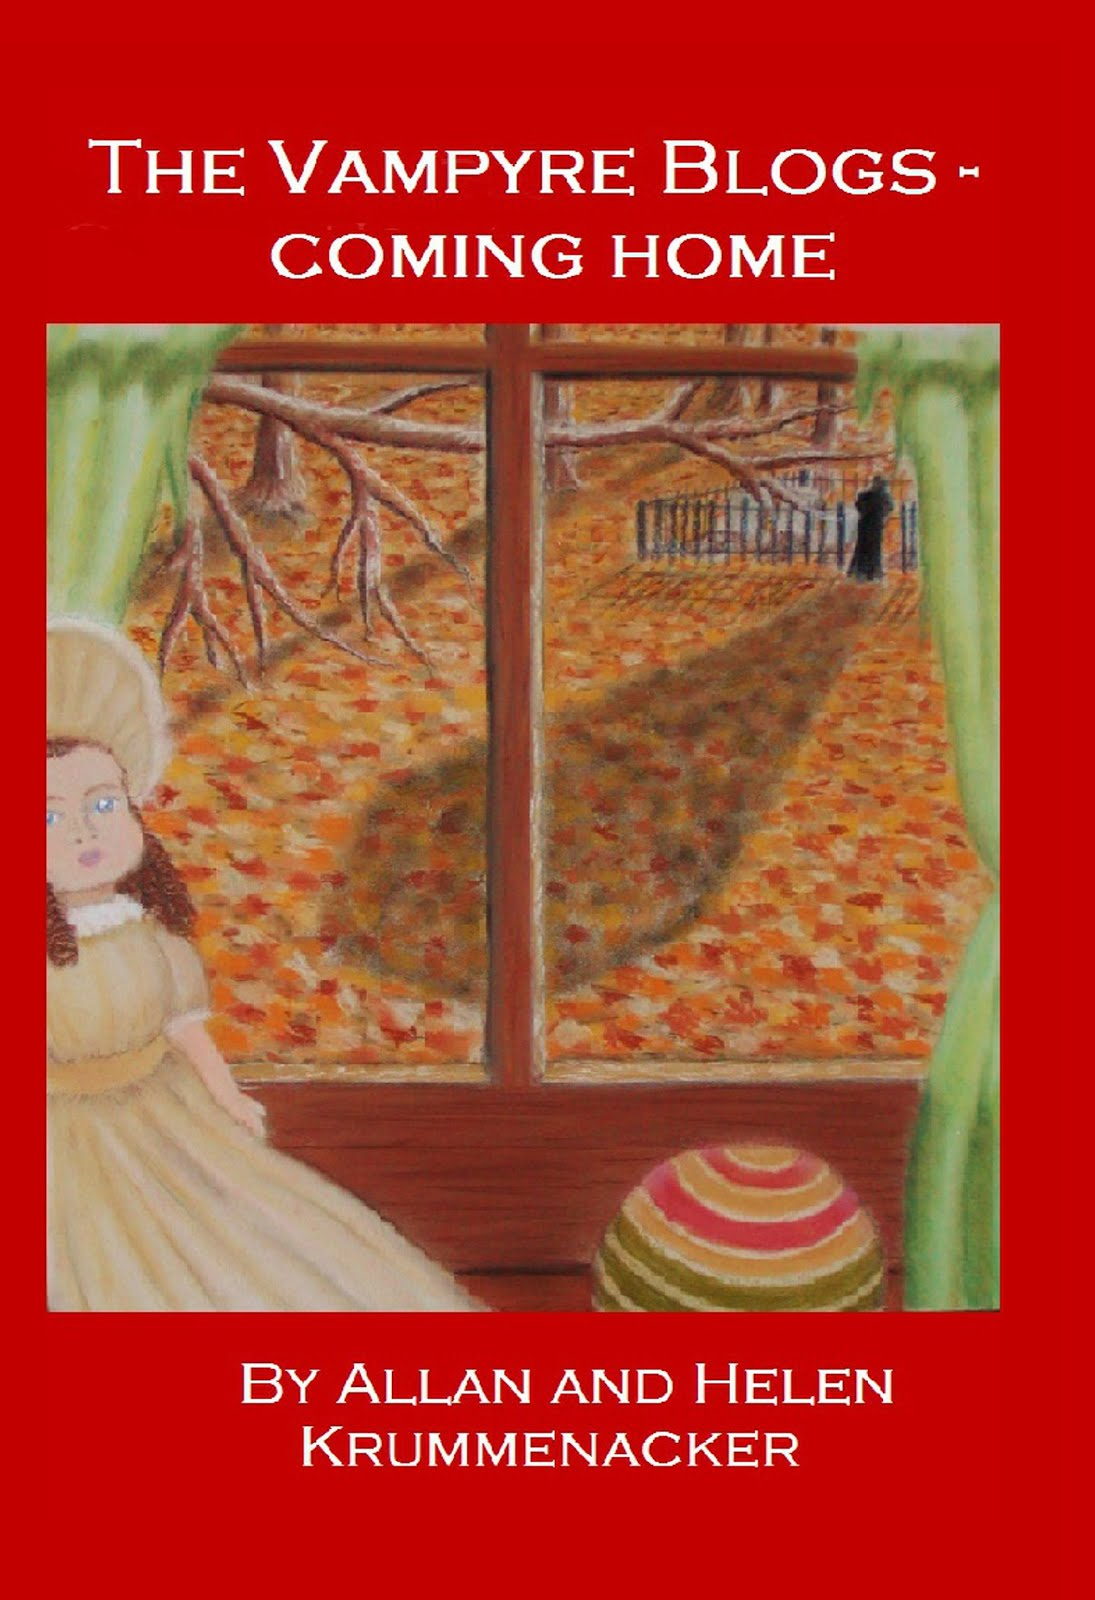 """The Vampyre Blogs - Coming Home""  Is available in Trade Paperback and all E-book formats."